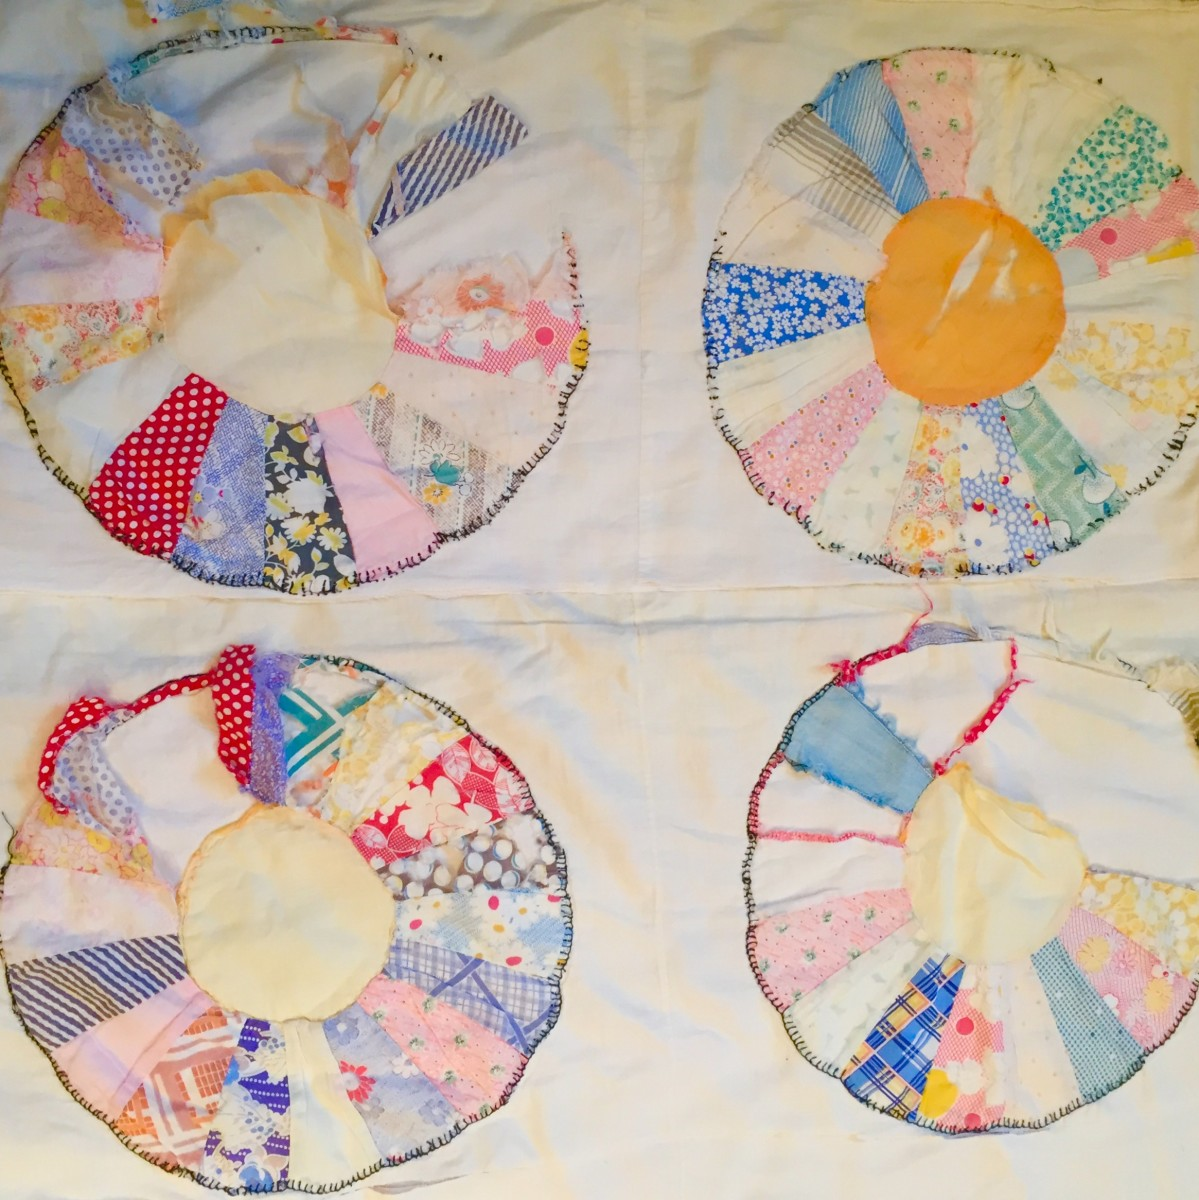 How to Rework a Tattered Quilt using a Serger